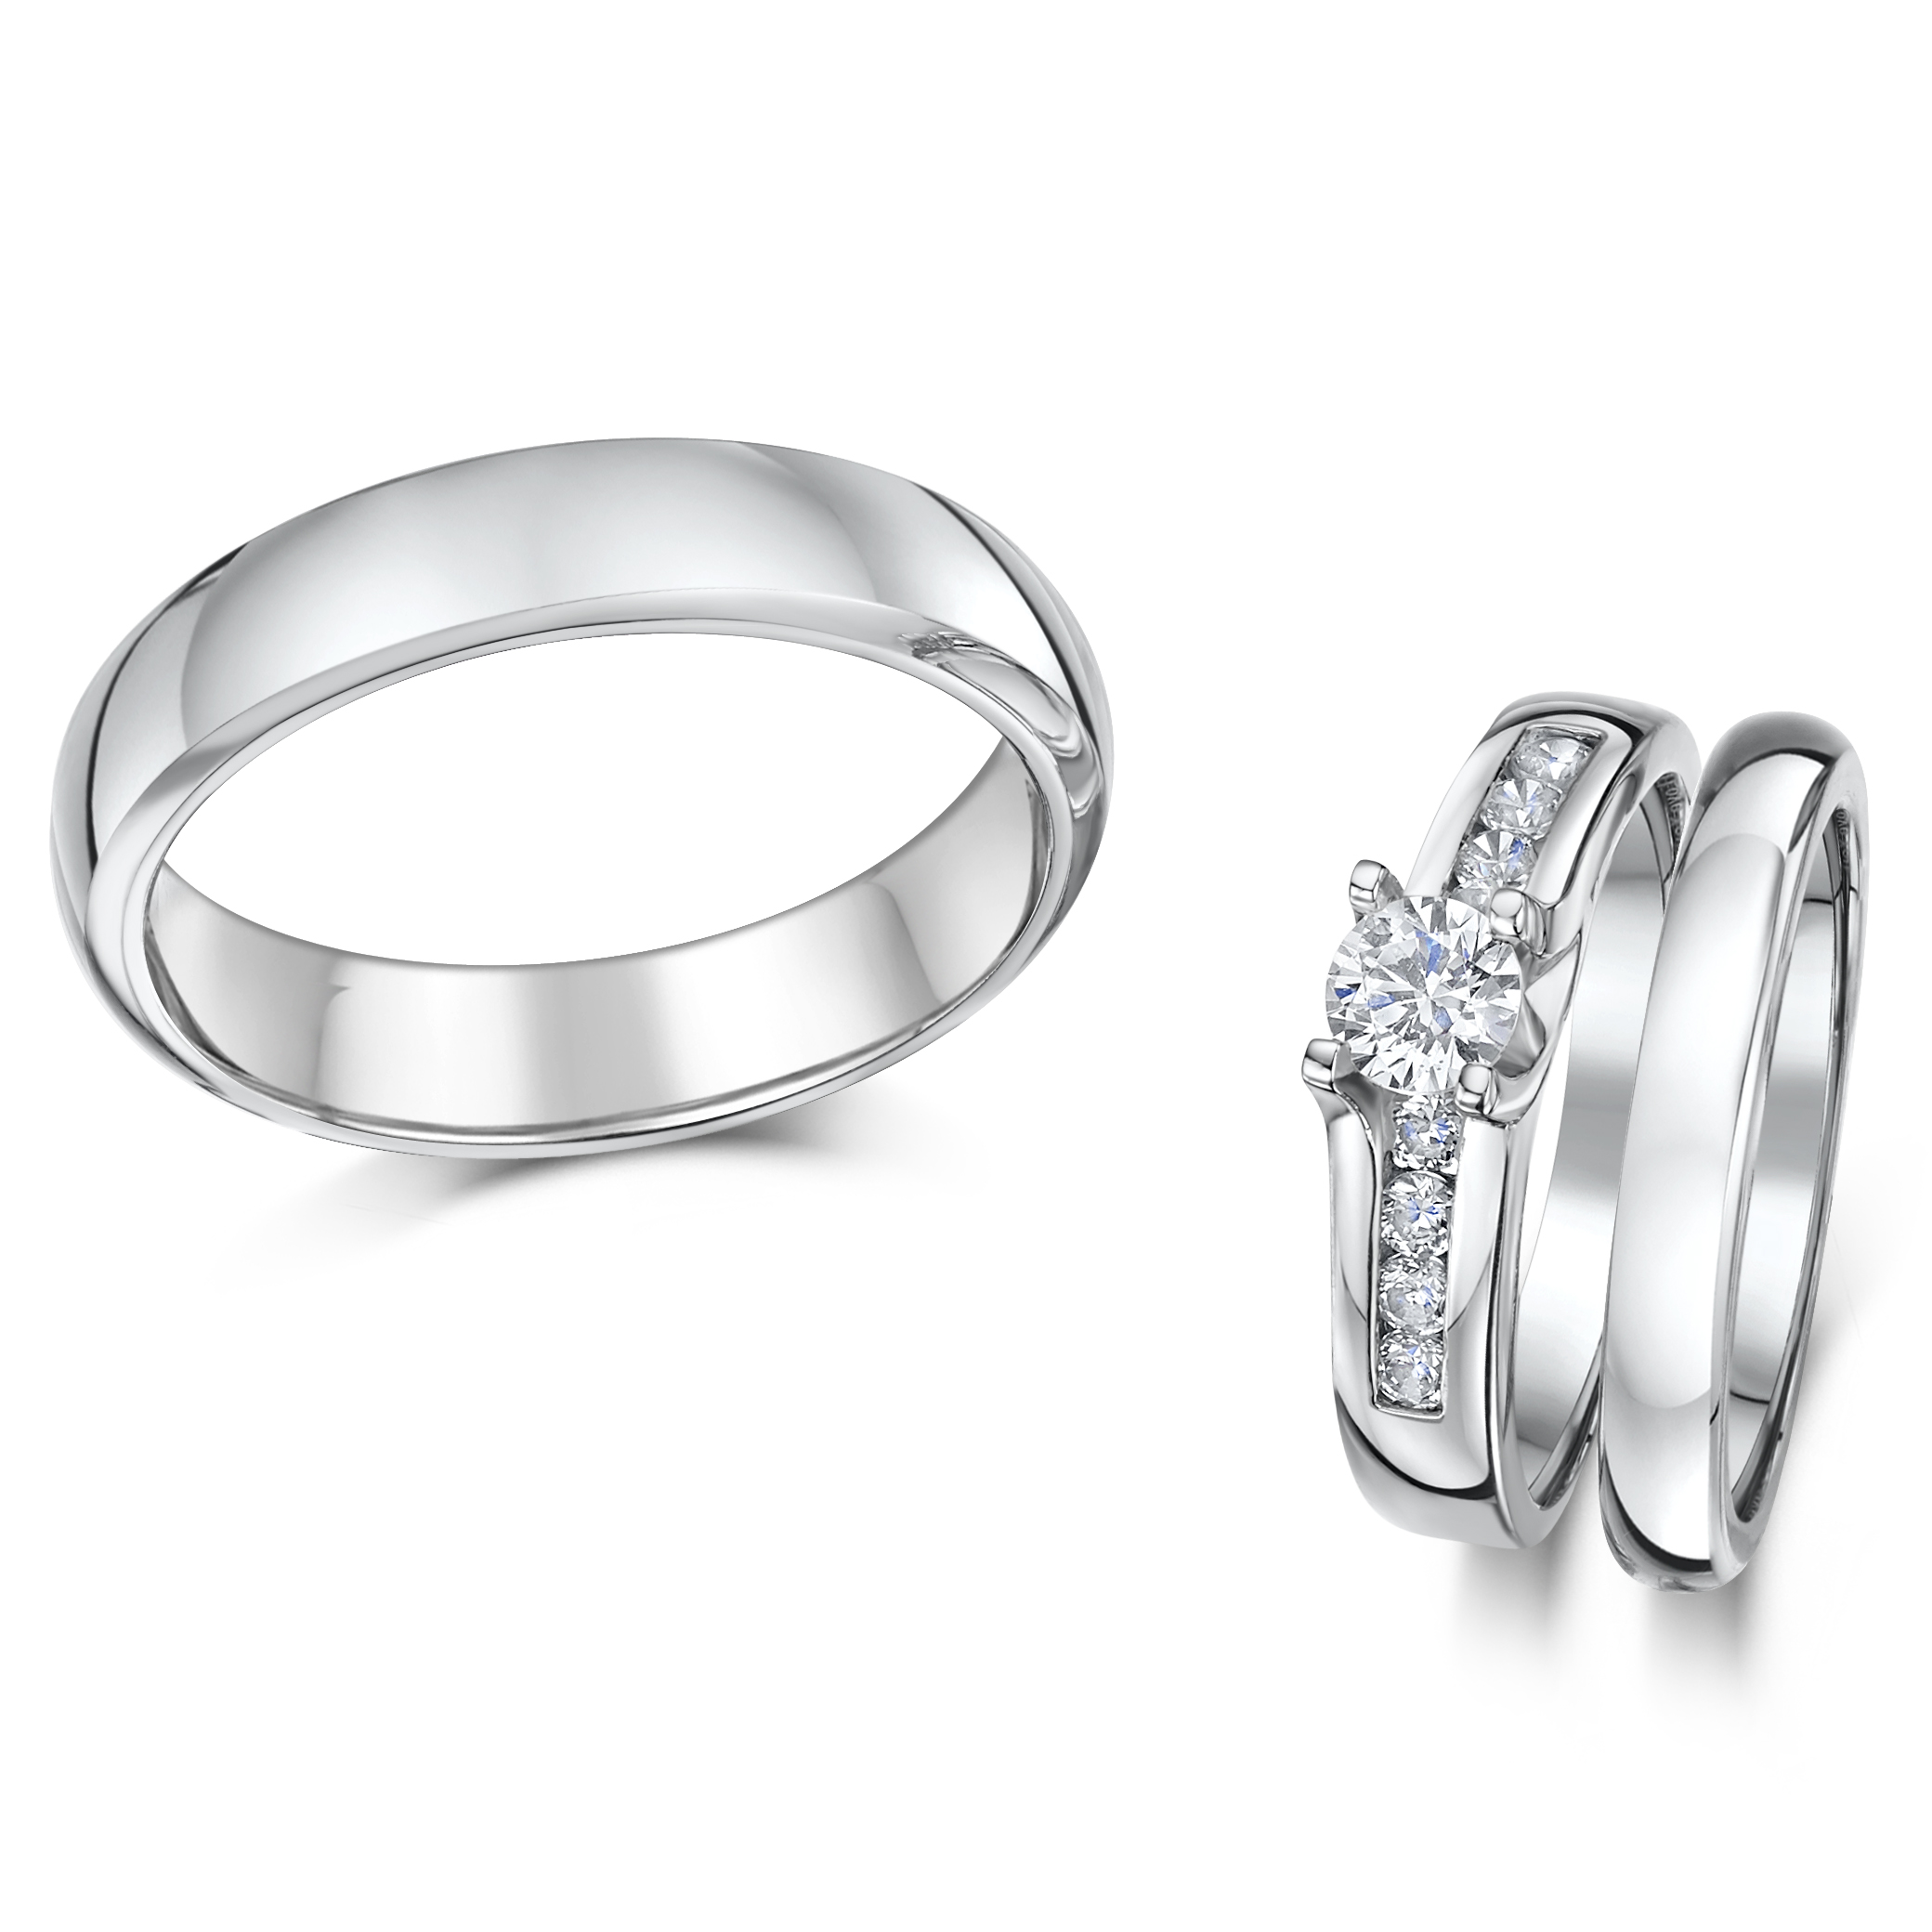 cobalt sets c cobalt wedding rings Cobalt solitaire Engagement His Hers 3 5mm Wedding Rings